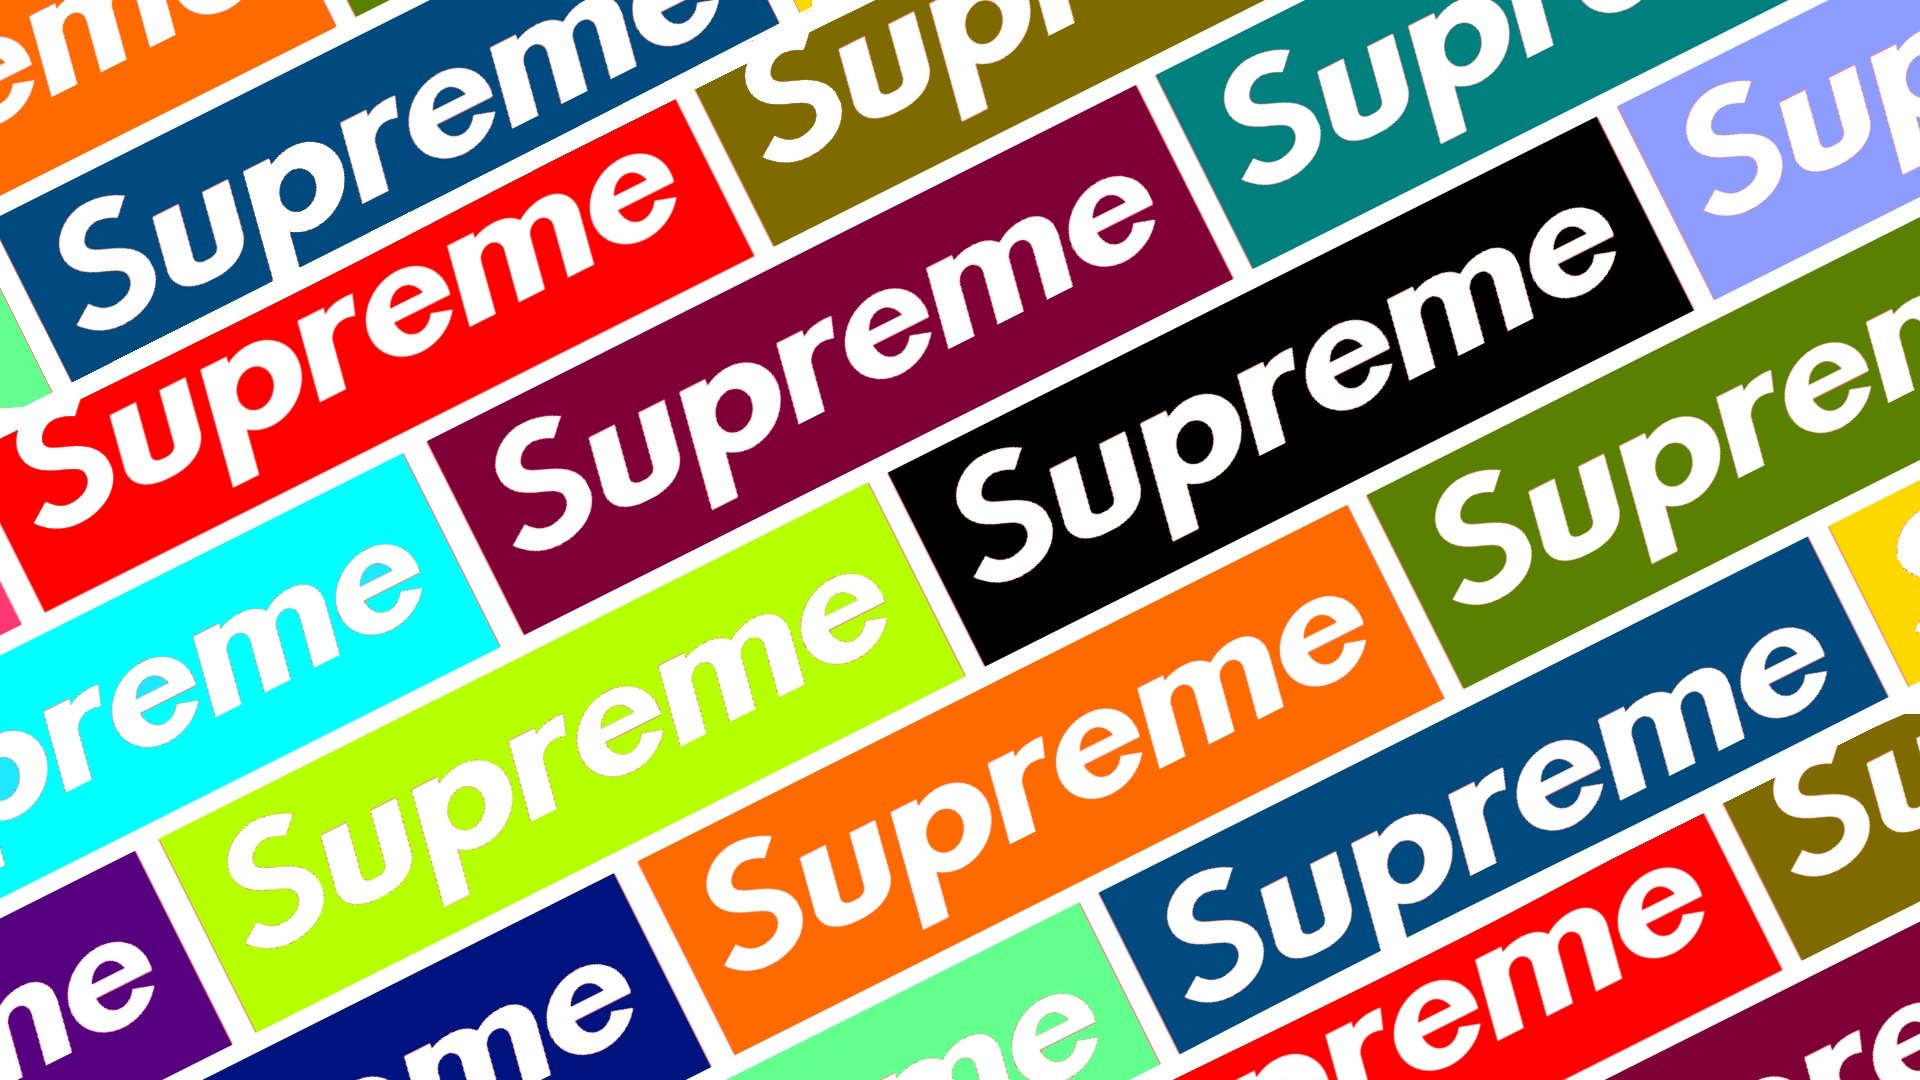 Colorfull supreme wallpaper v2 by elegantcomplex 1920x1080